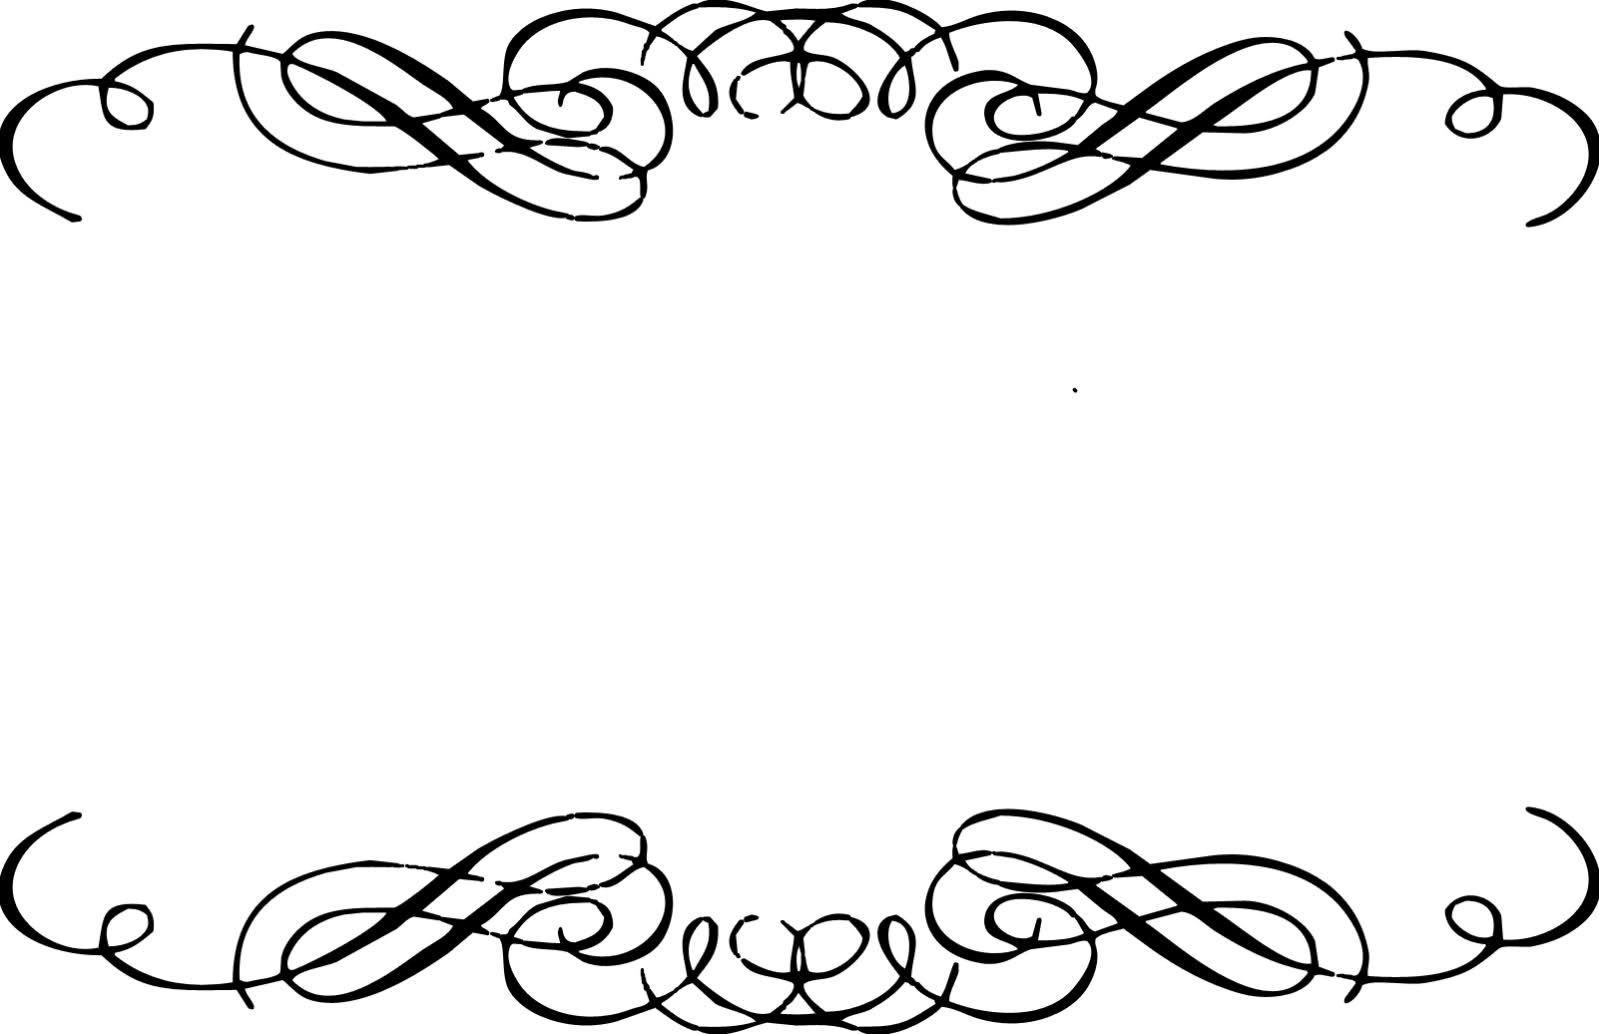 Corner Flourishes Free - ClipArt Best